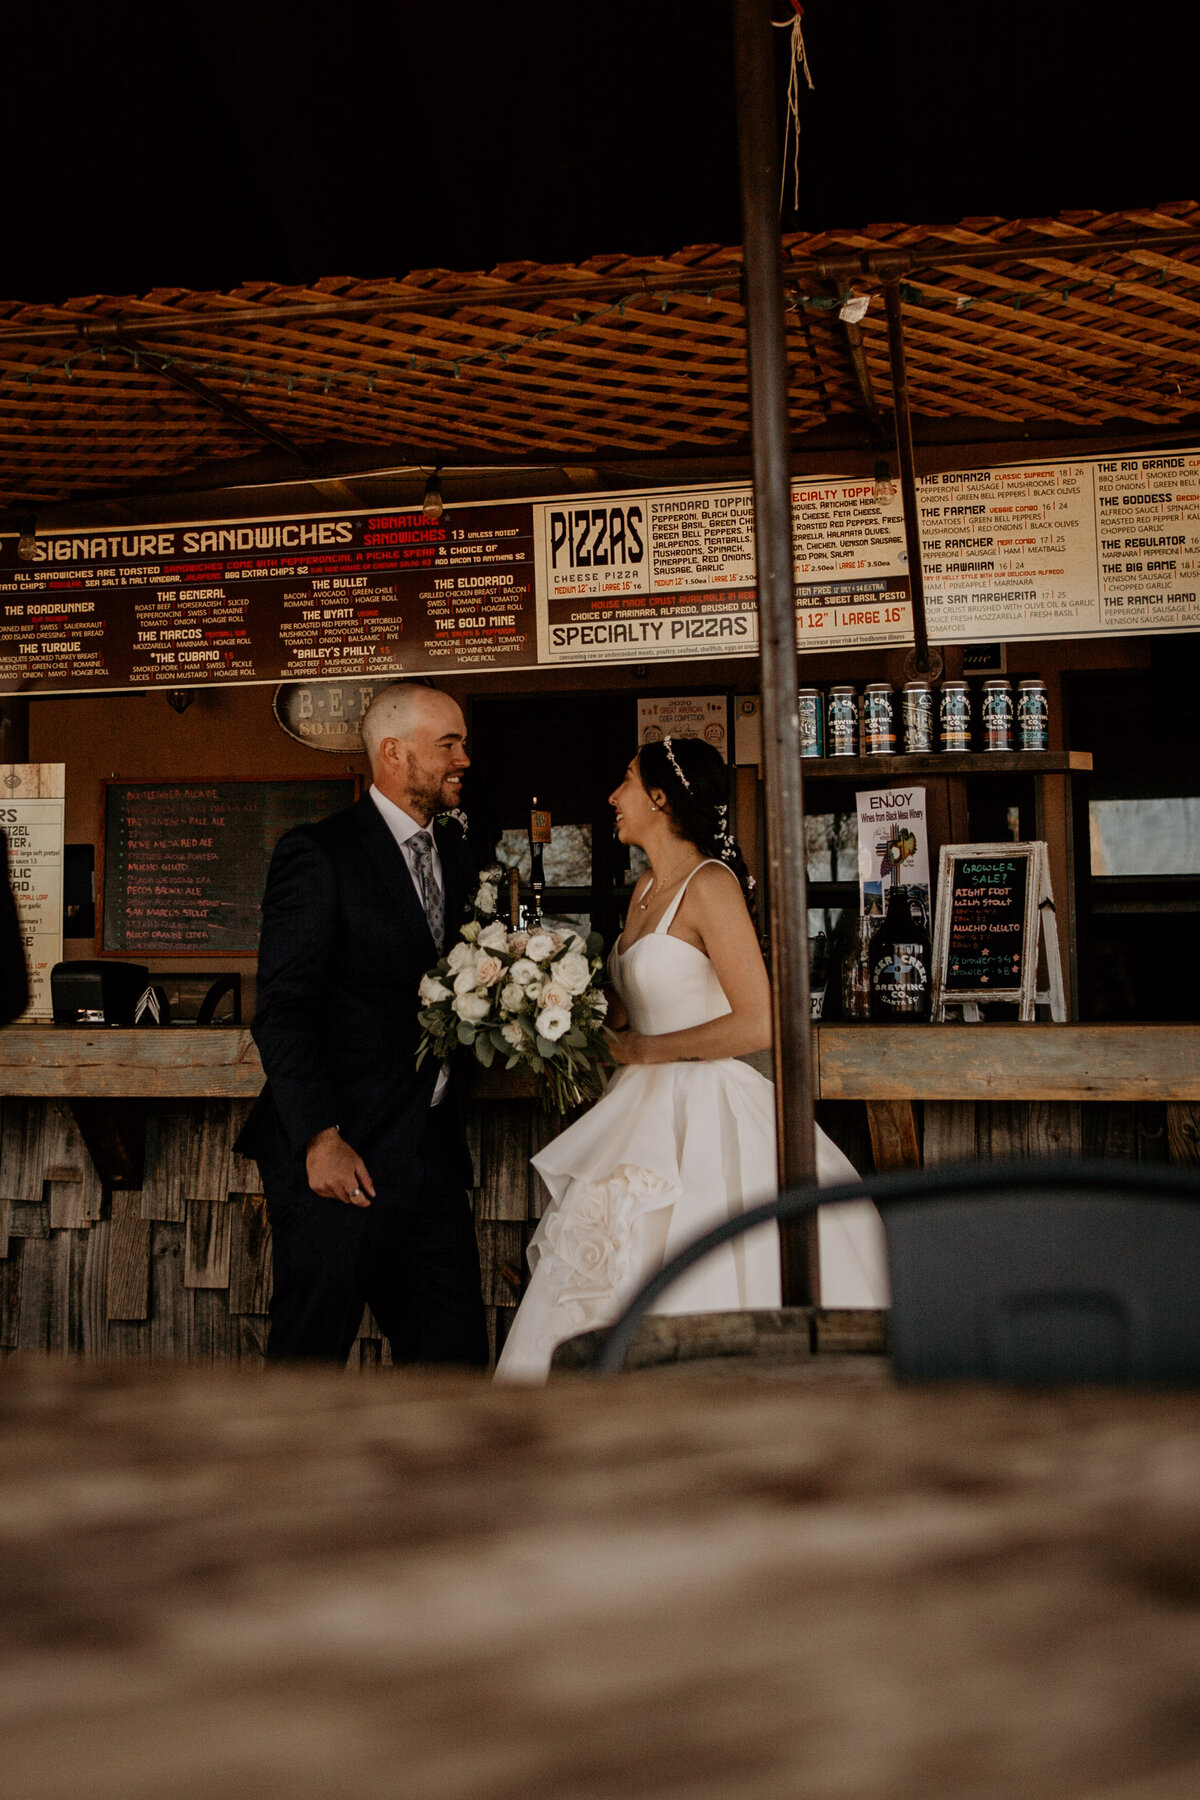 bride and groom standing together at a brewery in Santa Fe